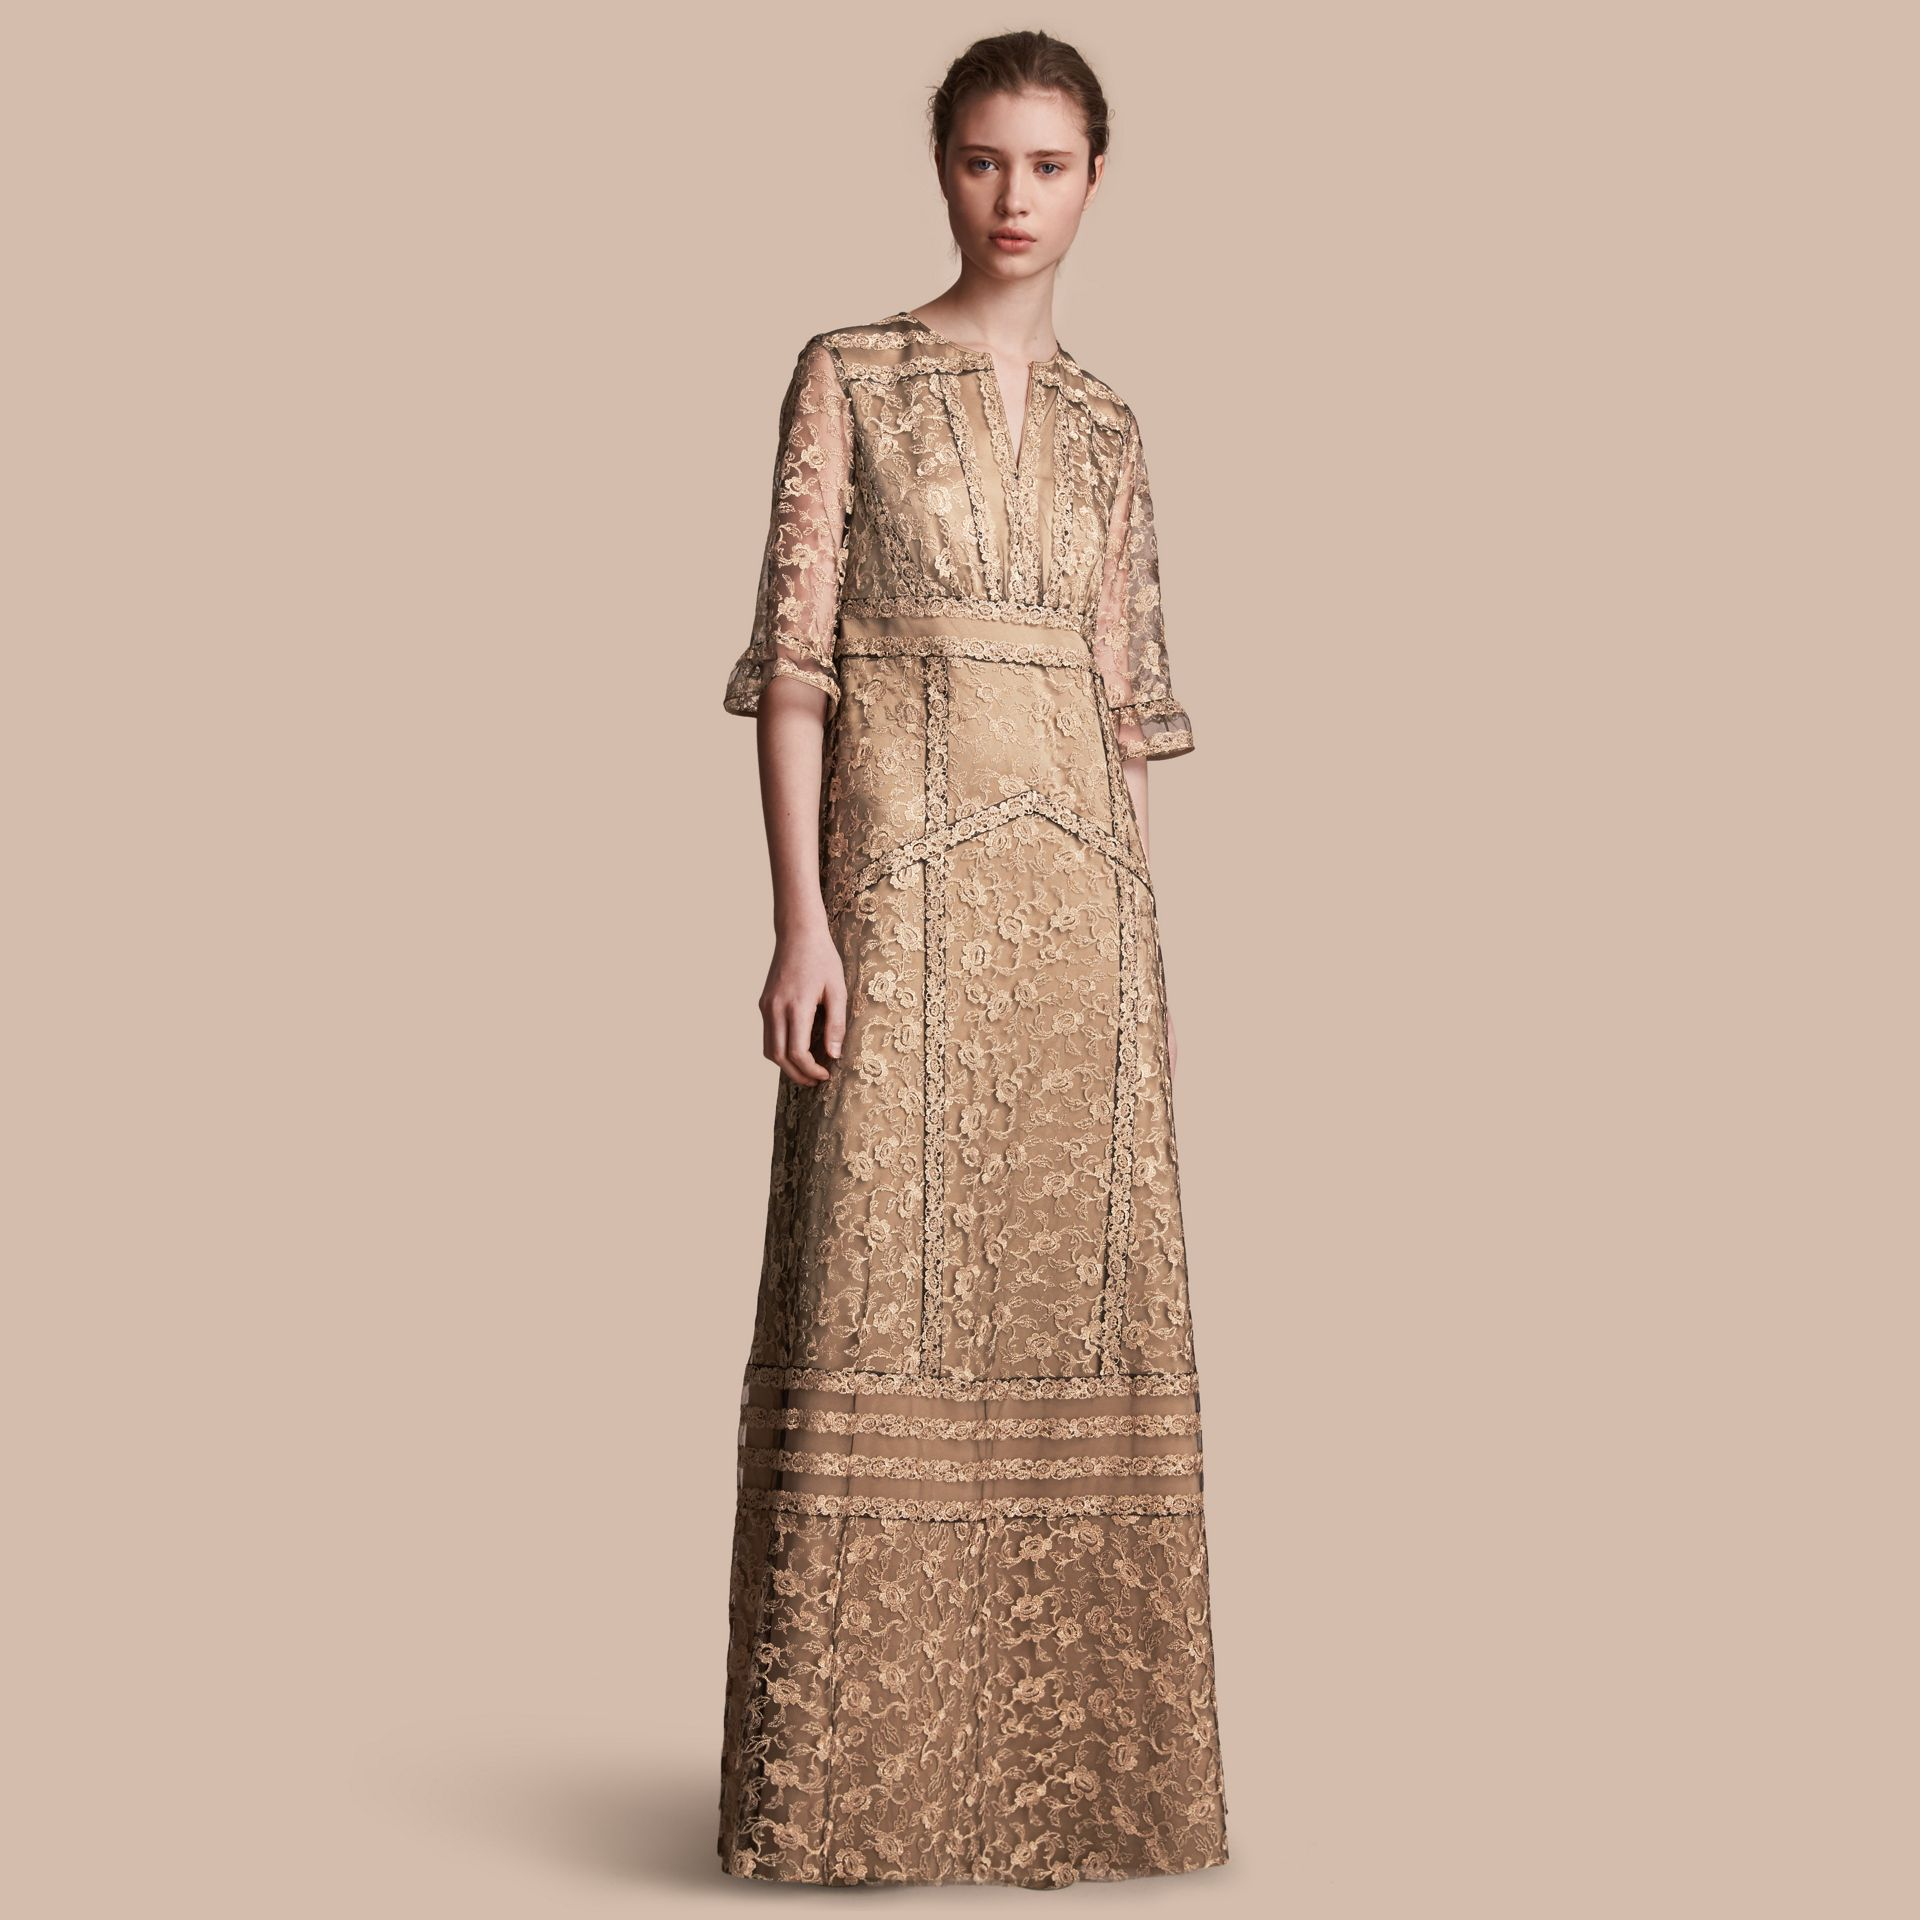 Floral Lace Tulle Dress in Gold - Women | Burberry - gallery image 1